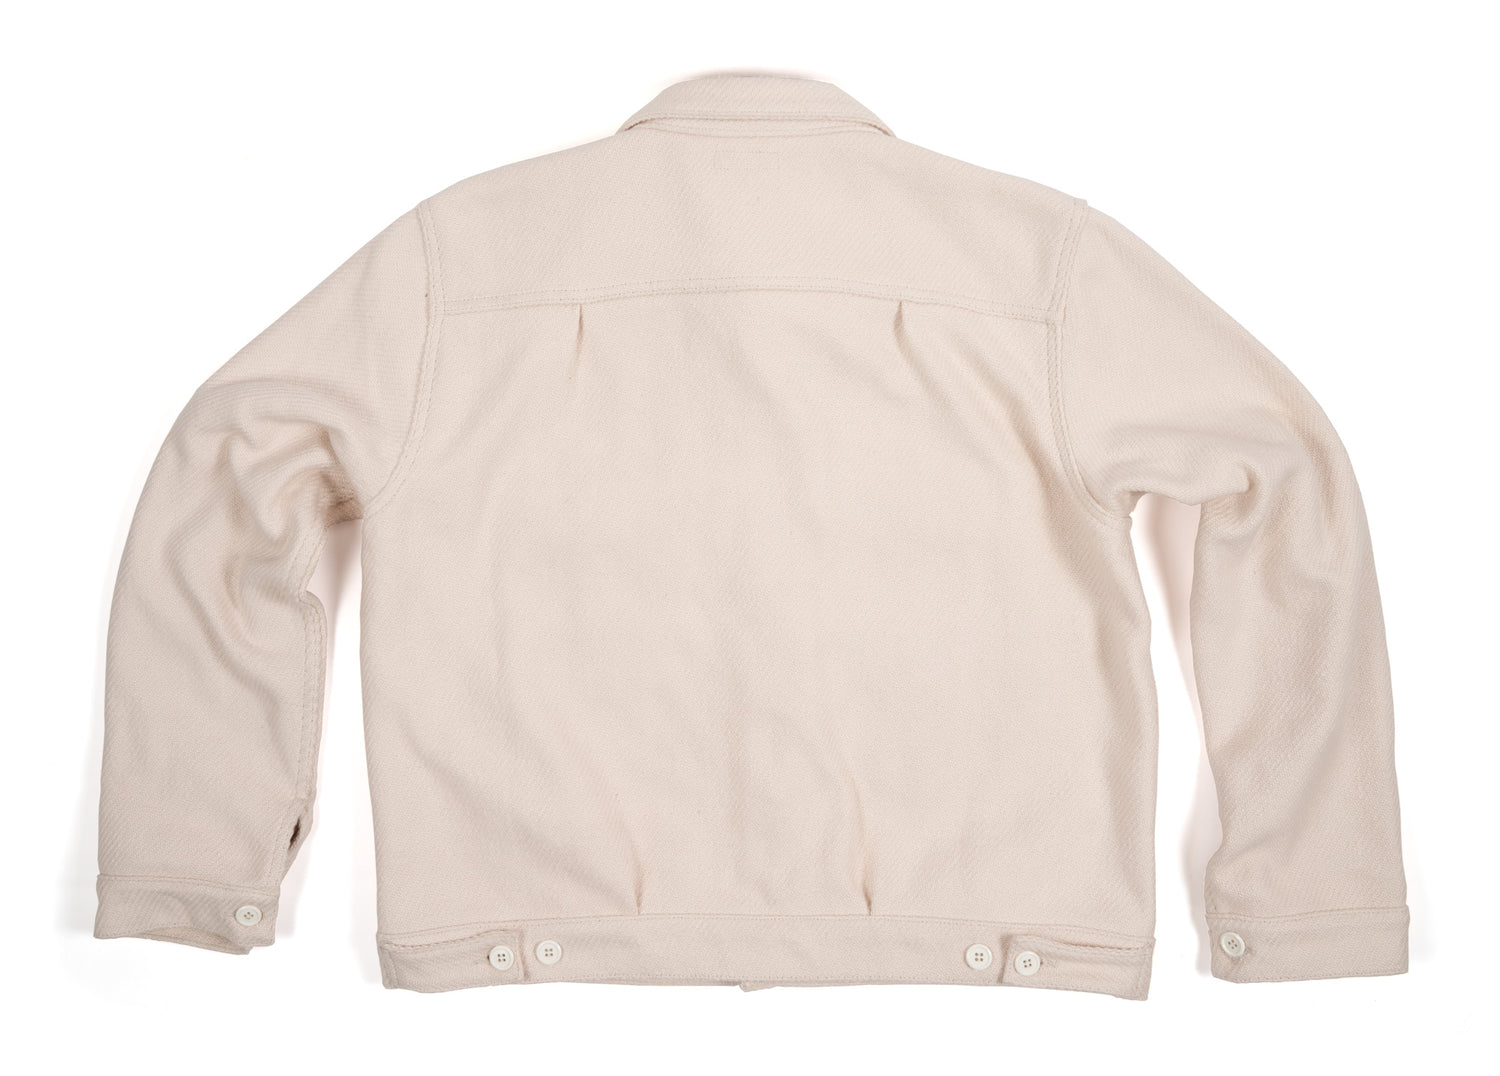 Throne x Knickerbocker Trucker Jacket in Oatmeal